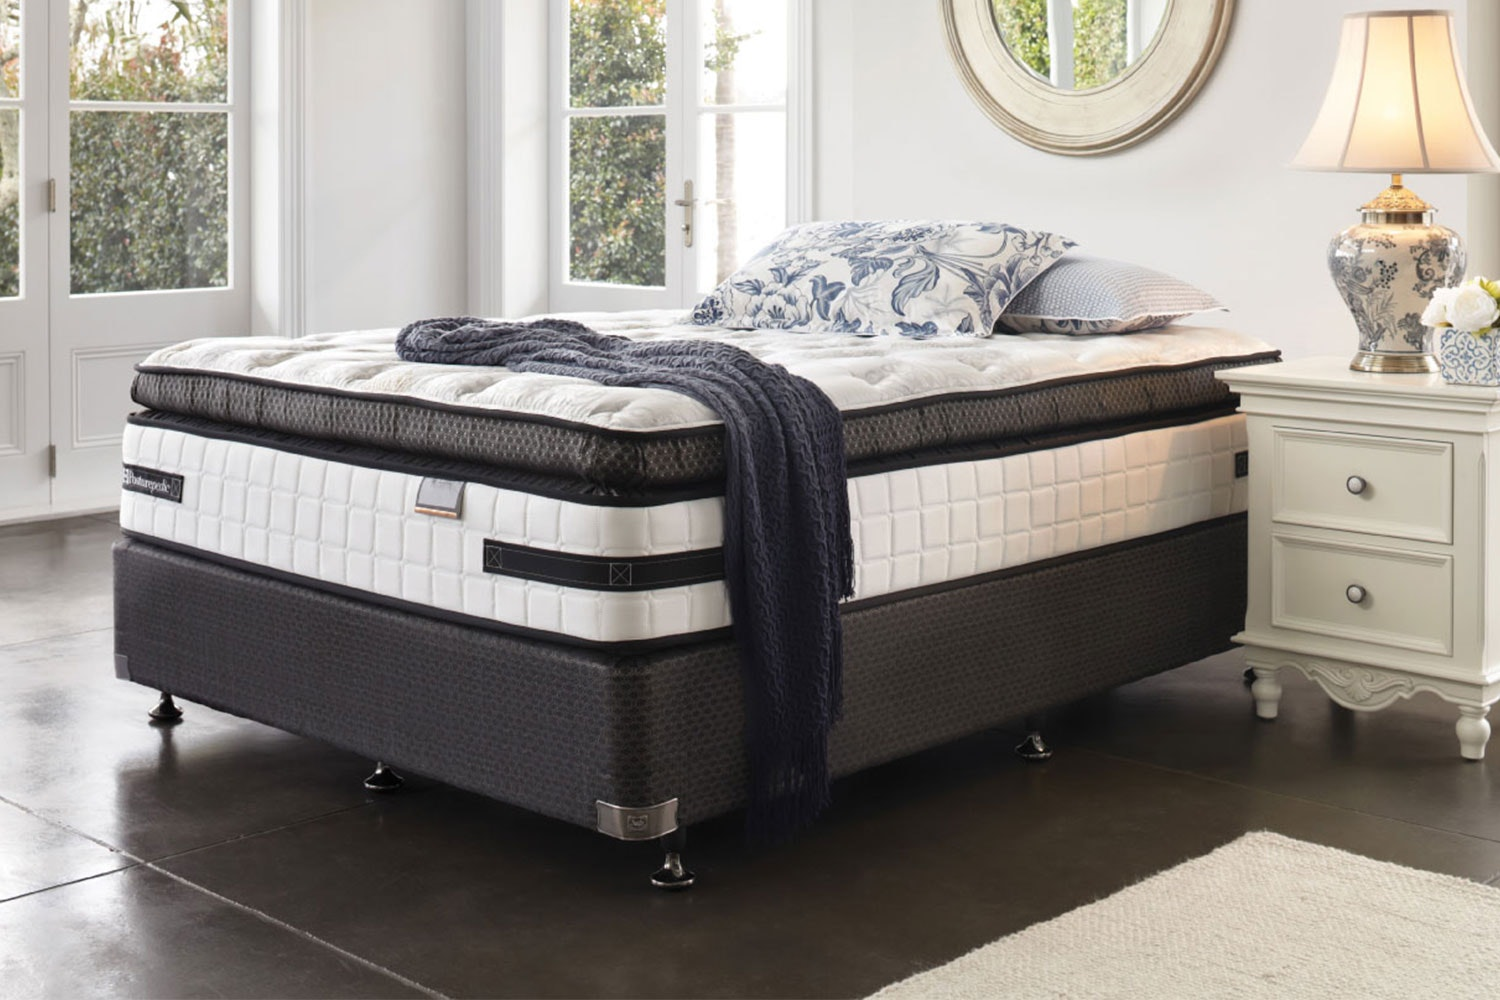 Kensington Ultra Plush Queen Bed By Sealy Posturepedic ...